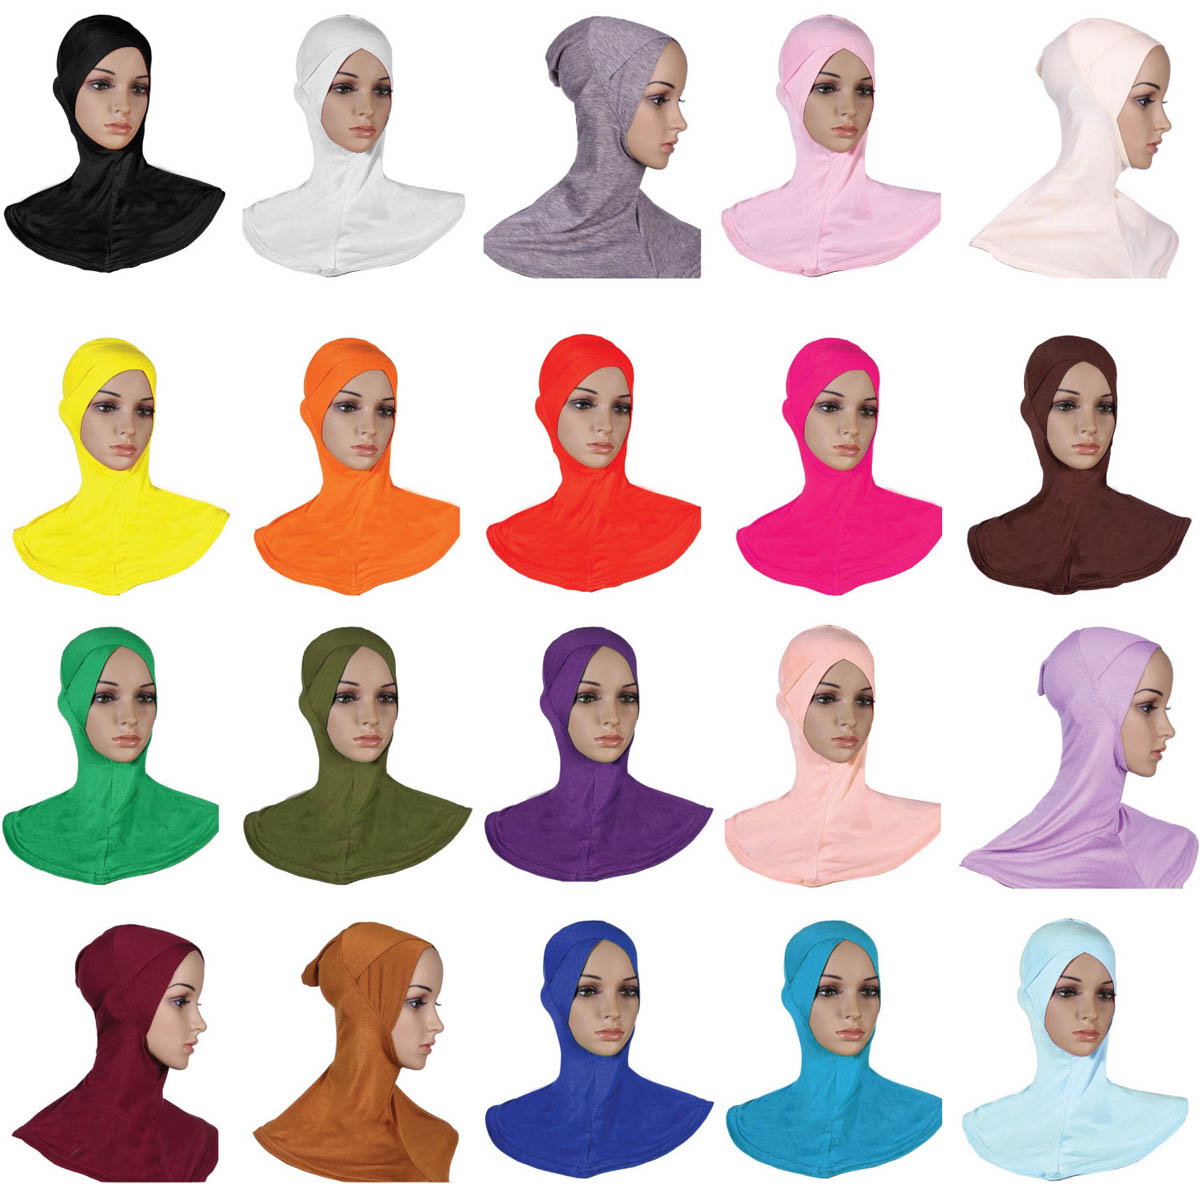 Single Cross Style Muslim Headscarf Hijab Scarf